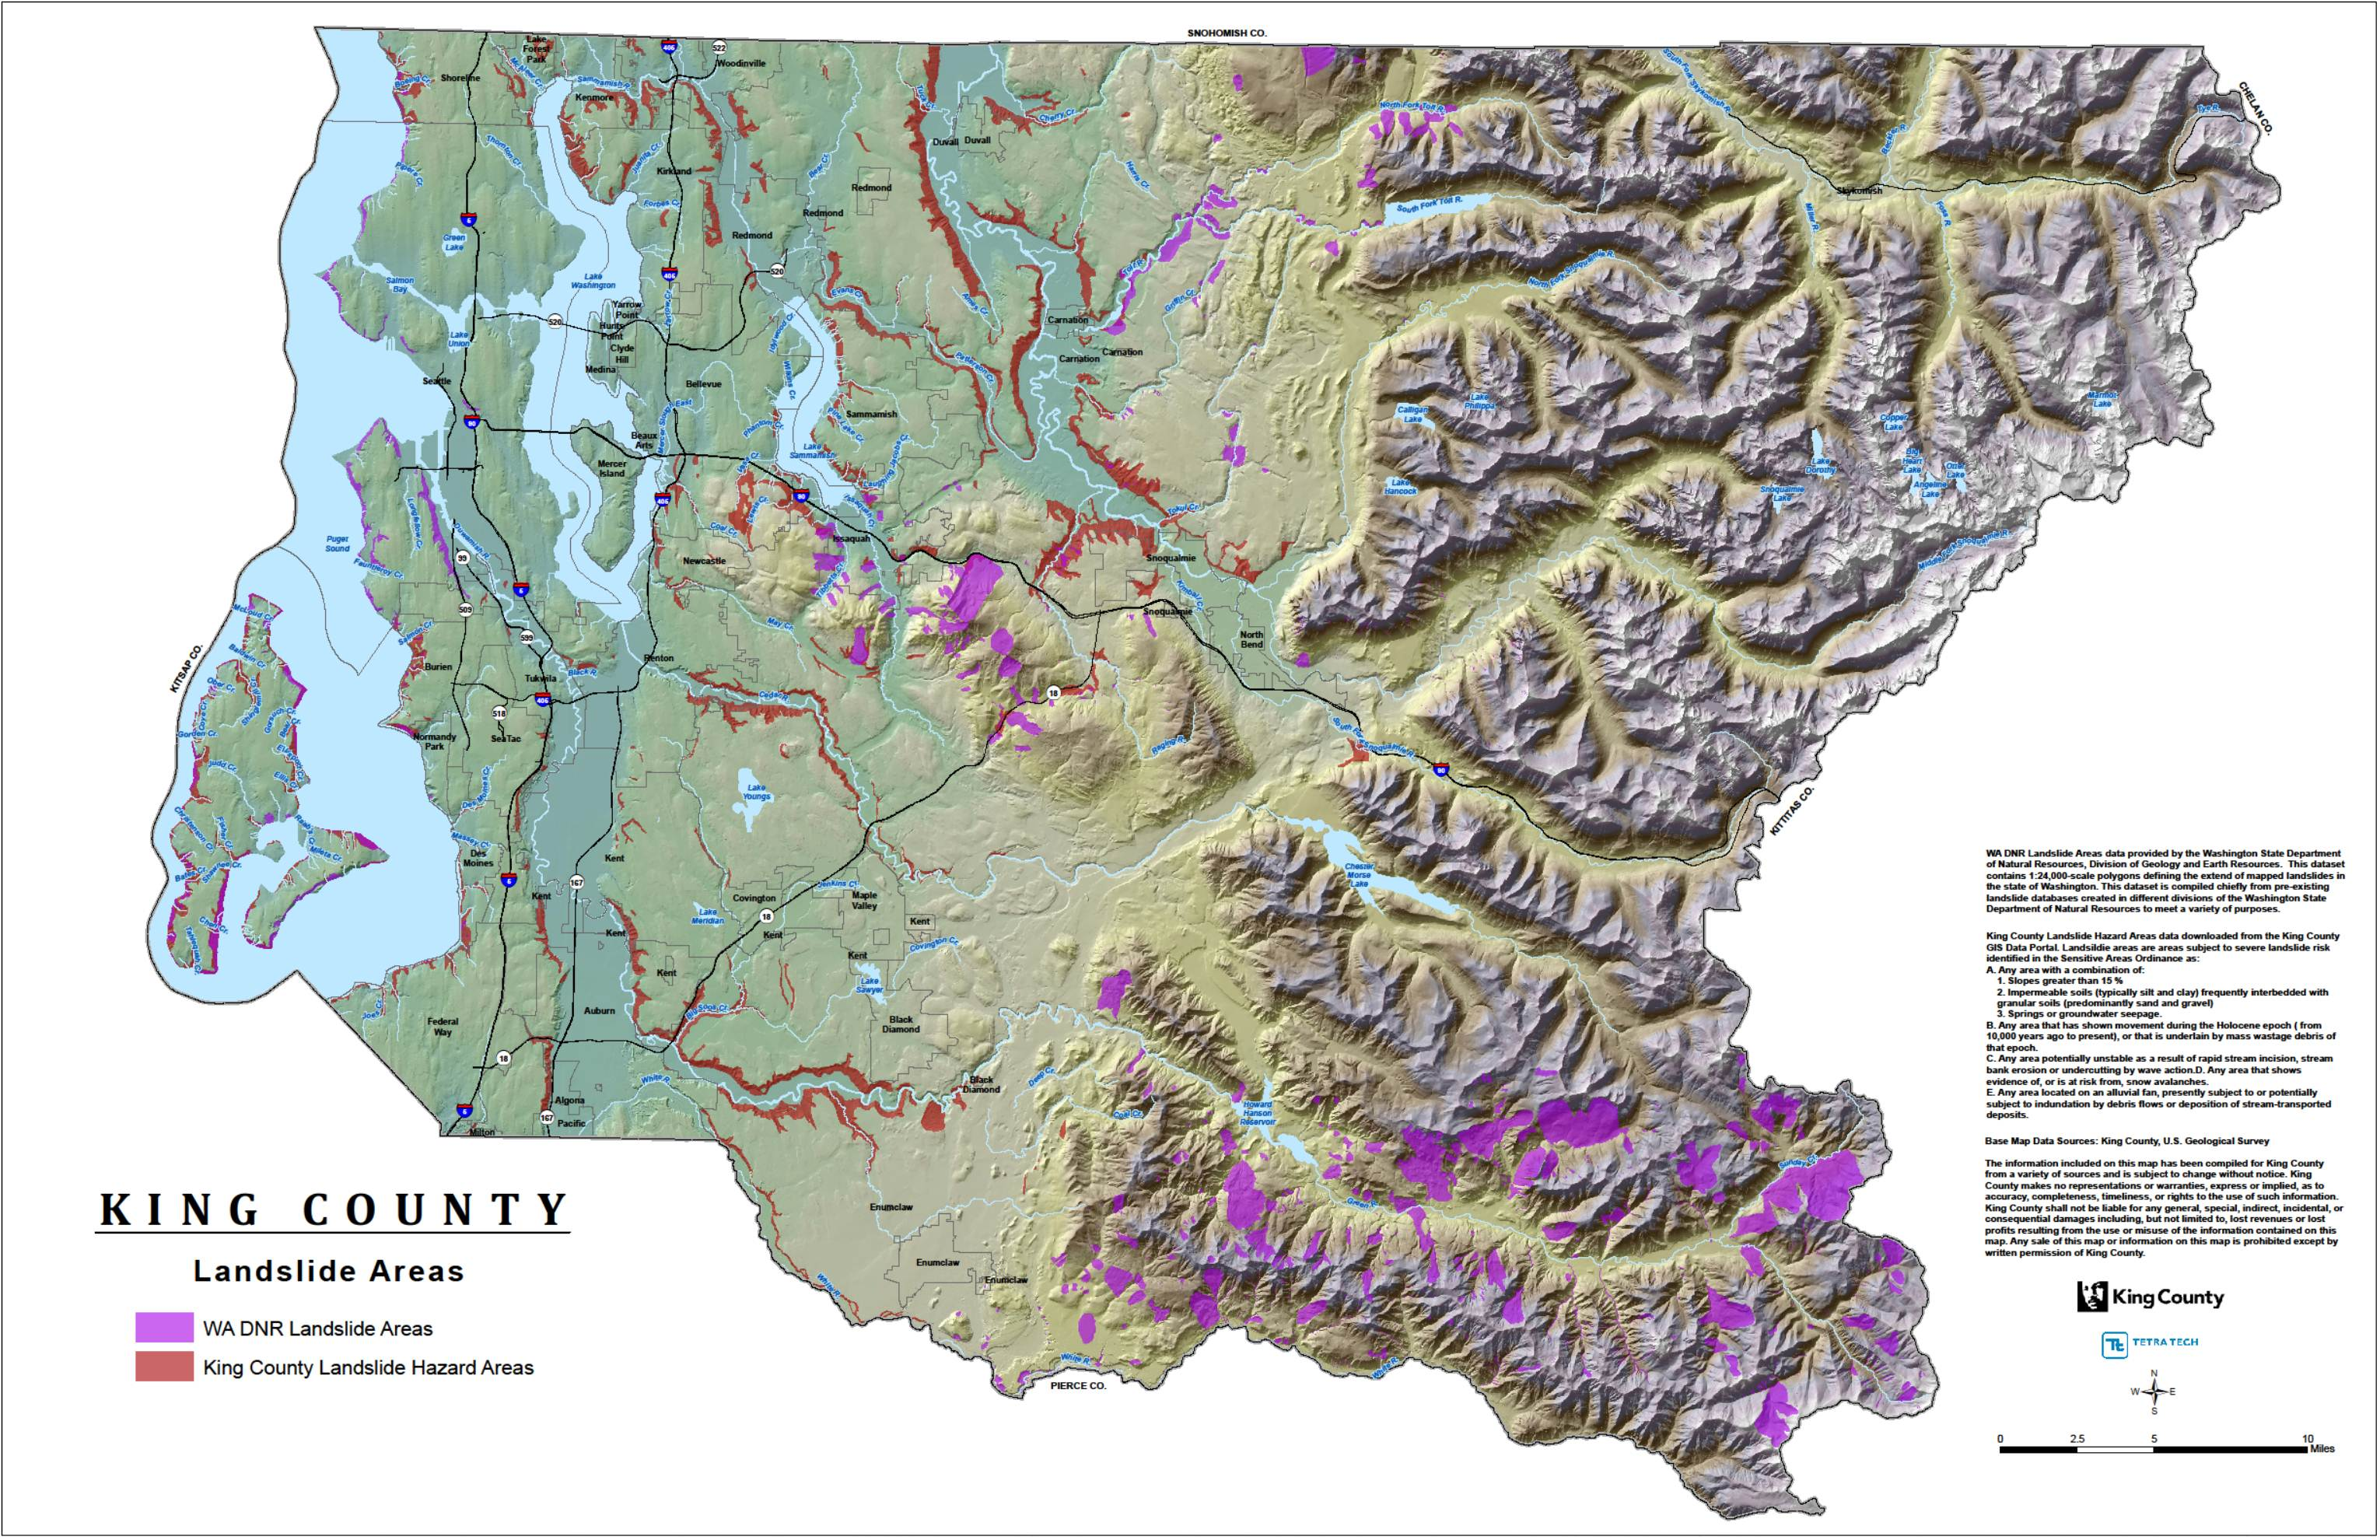 Landslide Risk Could Be Noted On King County Property Titles